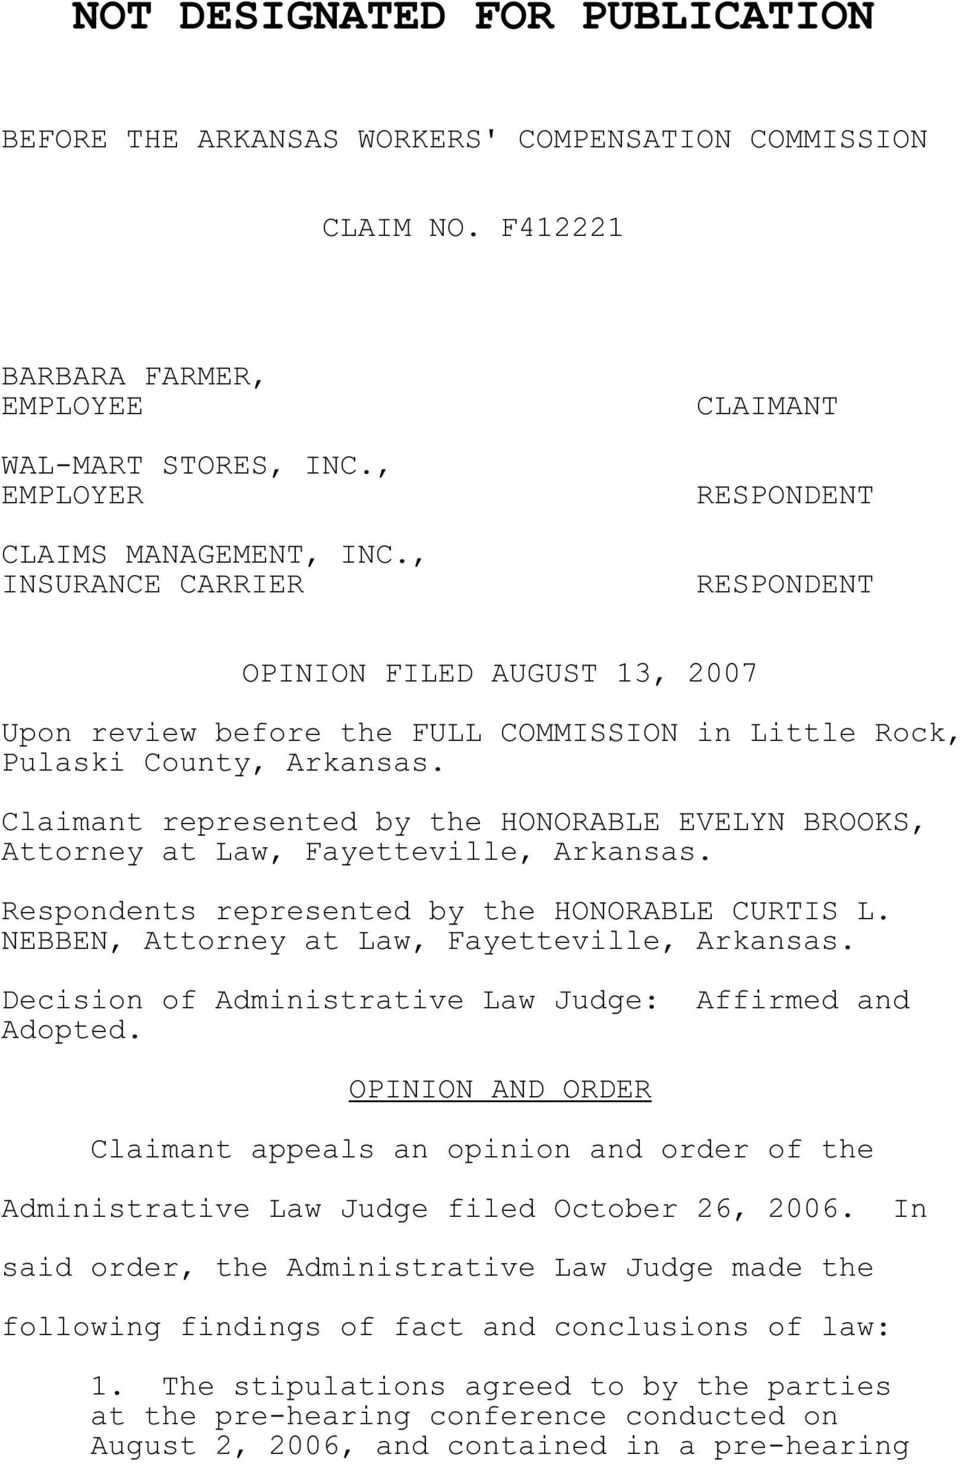 Claimant represented by the HONORABLE EVELYN BROOKS, Attorney at Law, Fayetteville, Arkansas. Respondents represented by the HONORABLE CURTIS L. NEBBEN, Attorney at Law, Fayetteville, Arkansas.